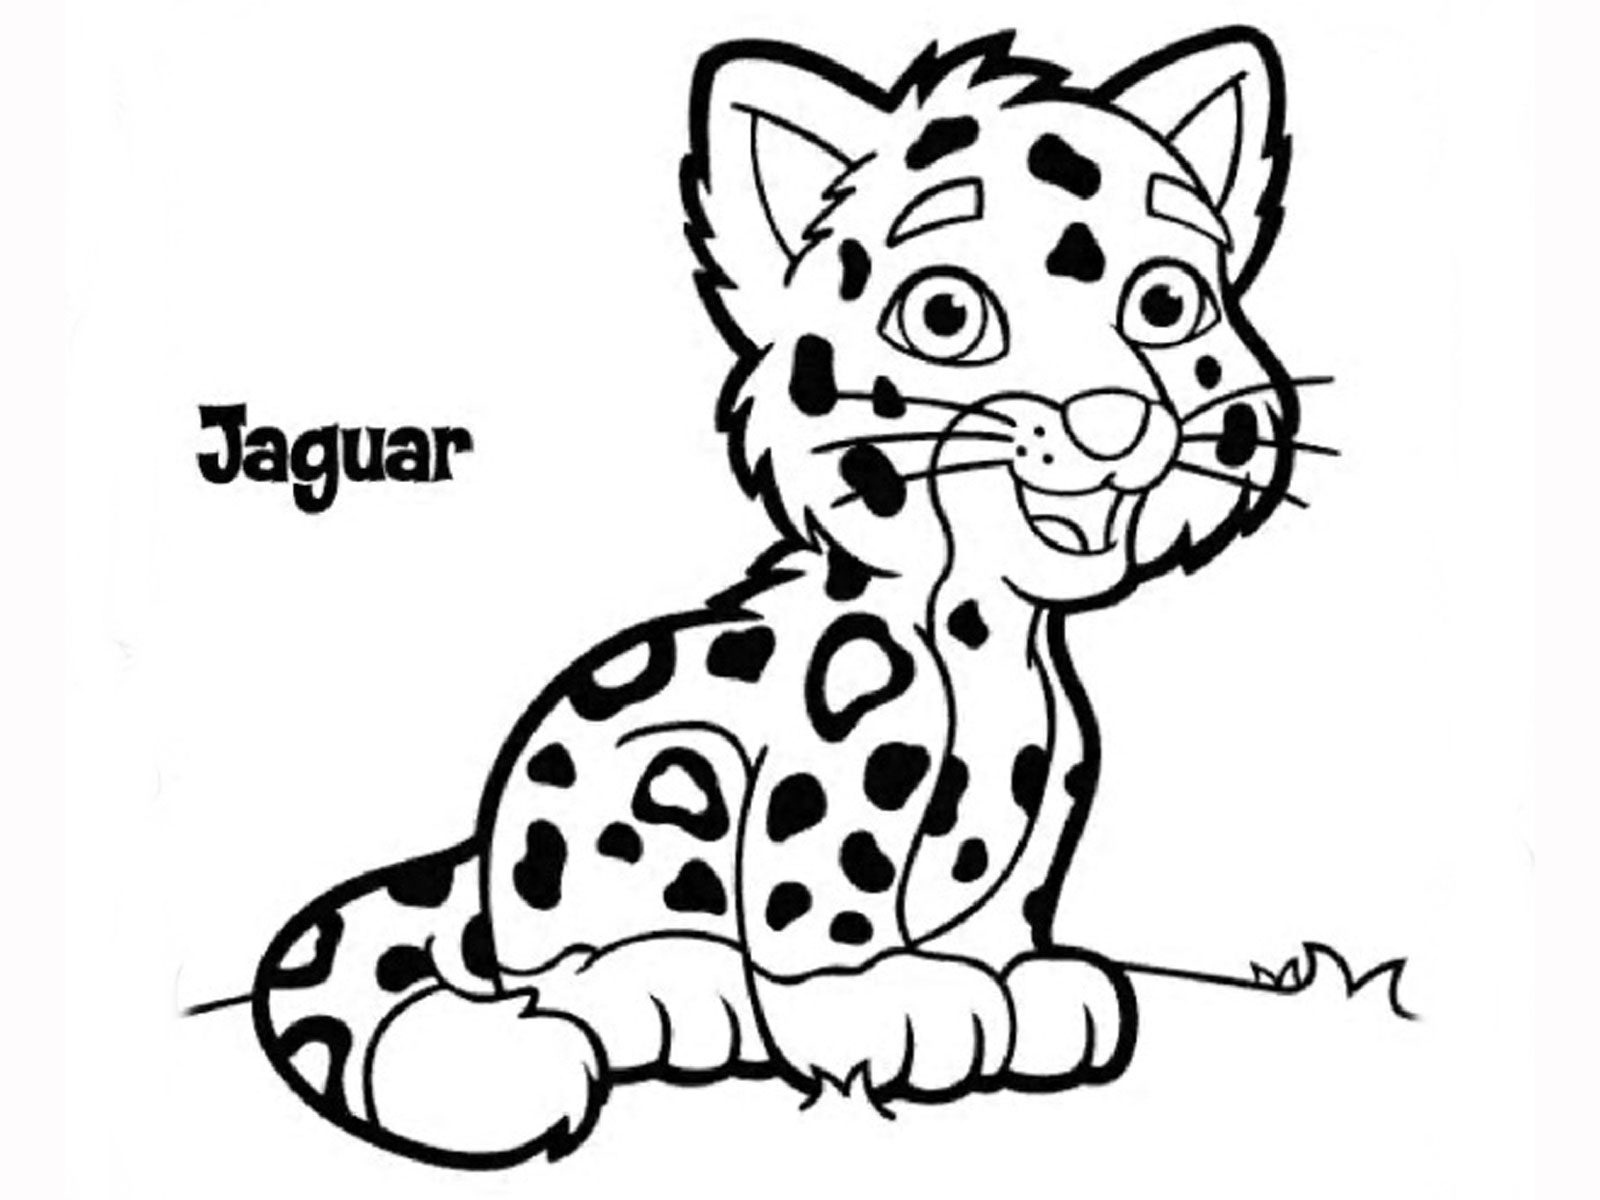 cheetah colouring printable cheetah coloring pages for kids cool2bkids cheetah colouring